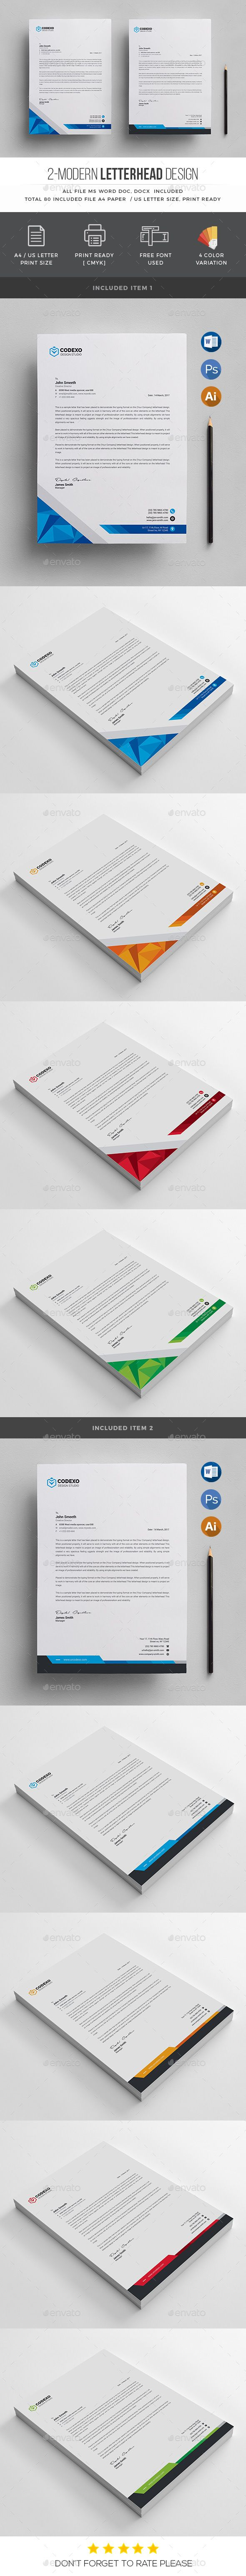 Modern Letterhead Template PSD, Vector EPS, AI Illustrator, MS Word